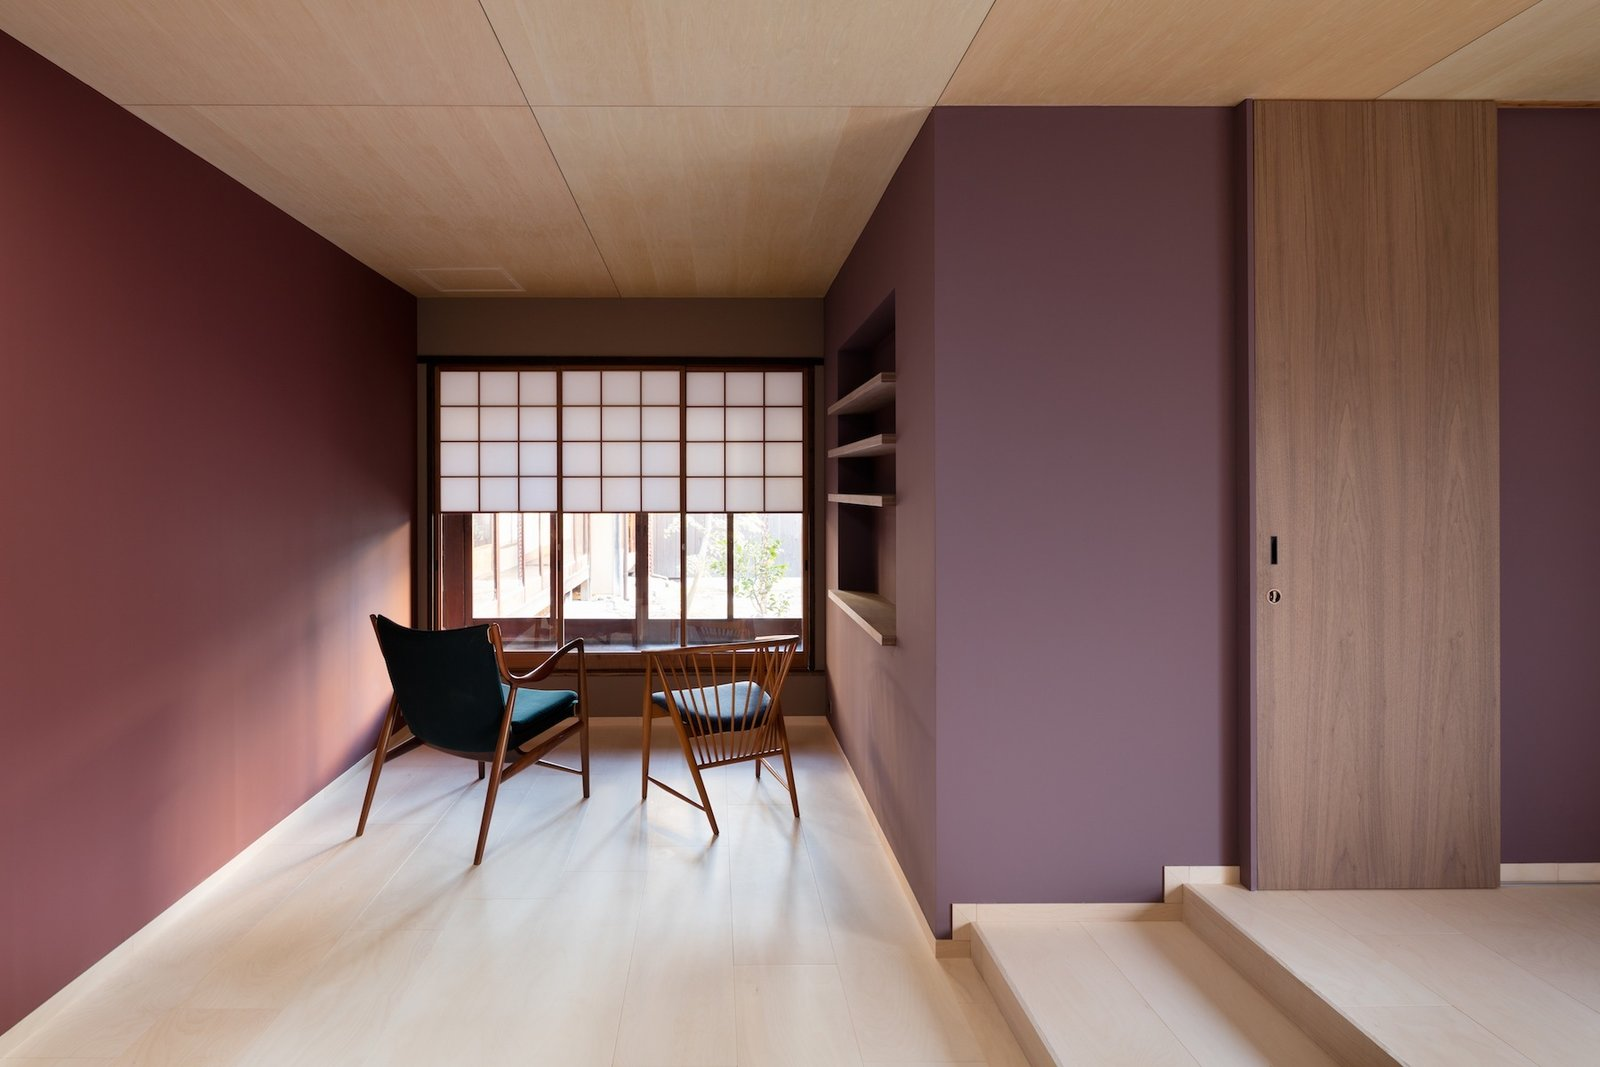 Living Room, Chair, Light Hardwood Floor, and Shelves  Nichinichi Townhouse from A Minimalist Townhouse Provides Serene Accommodations in Historic Kyoto